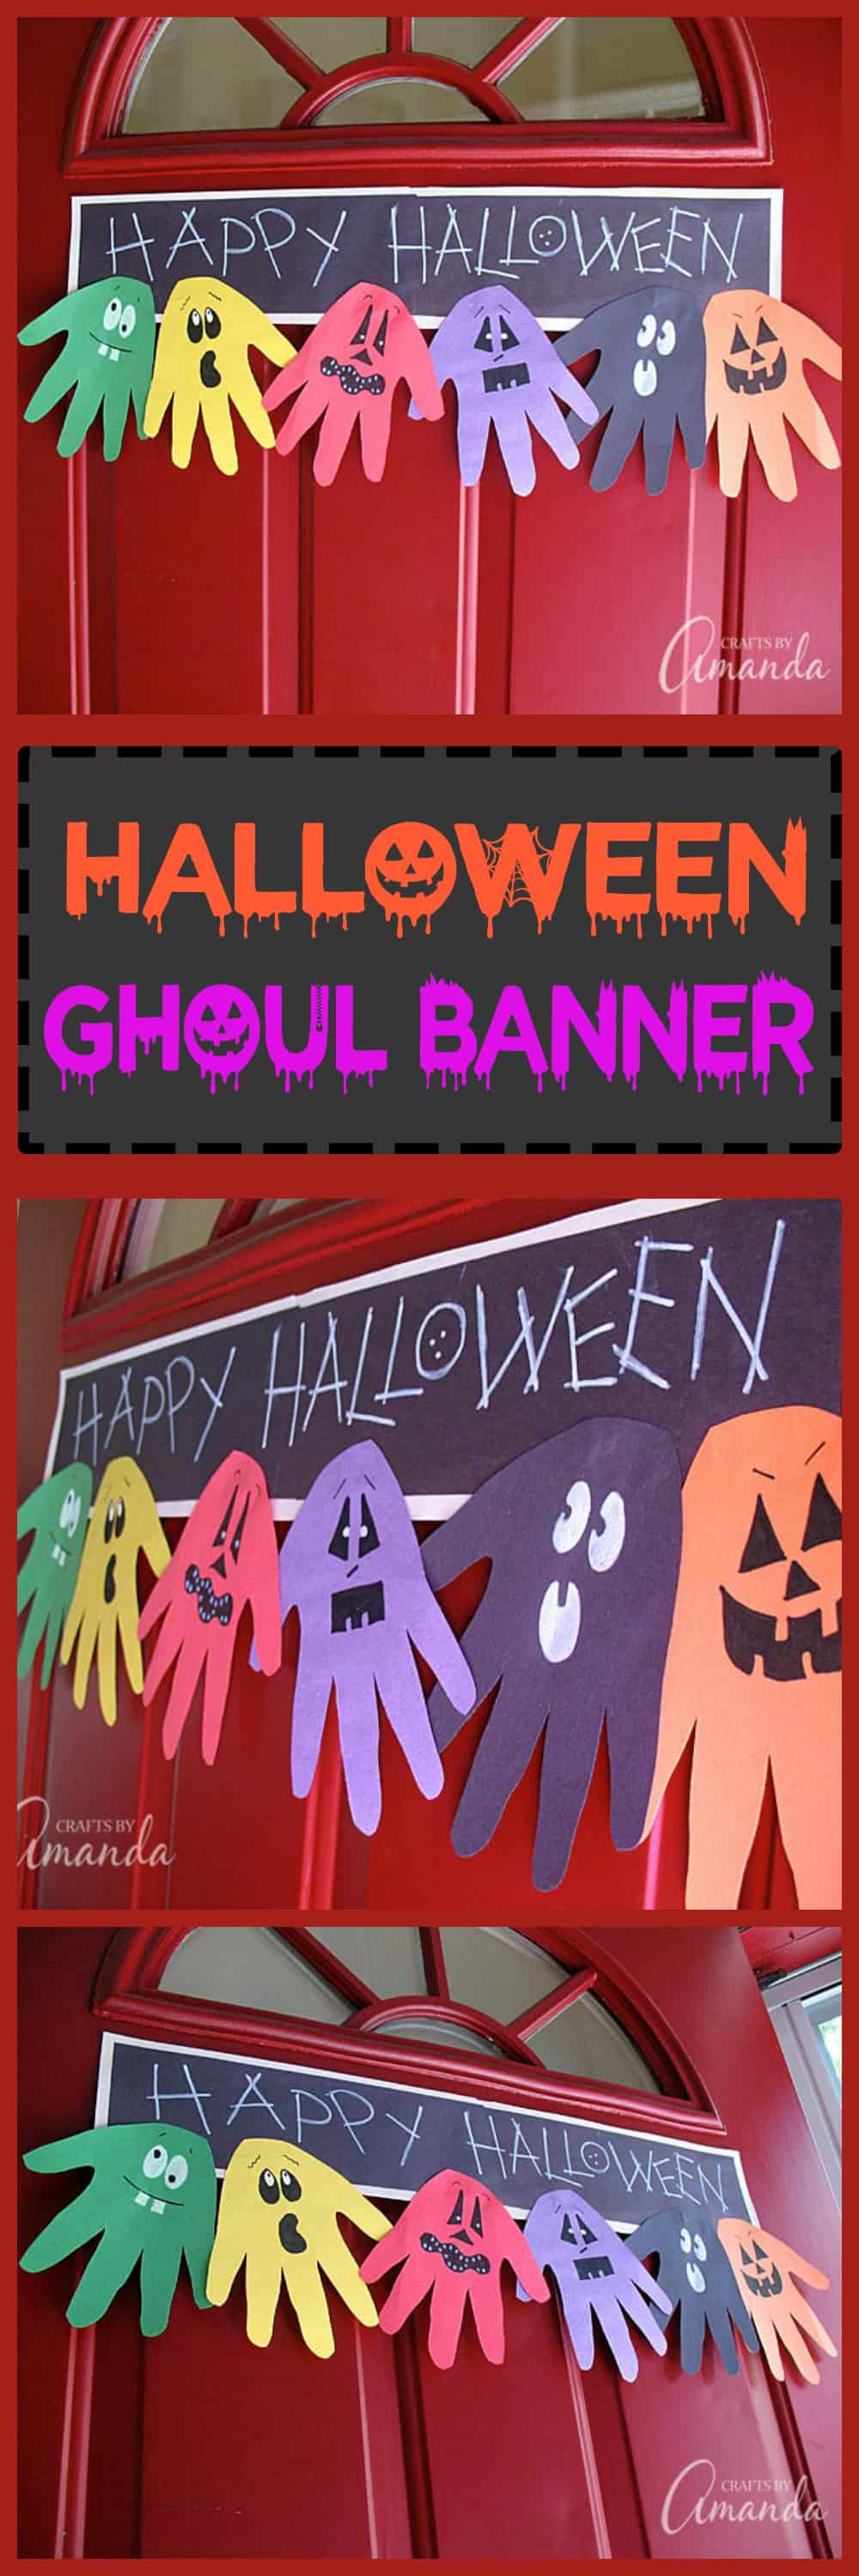 This Halloween Handprint Ghoul Banner is perfect for hanging on your door to greet trick or treaters this Halloween! So fun for the kids to make.